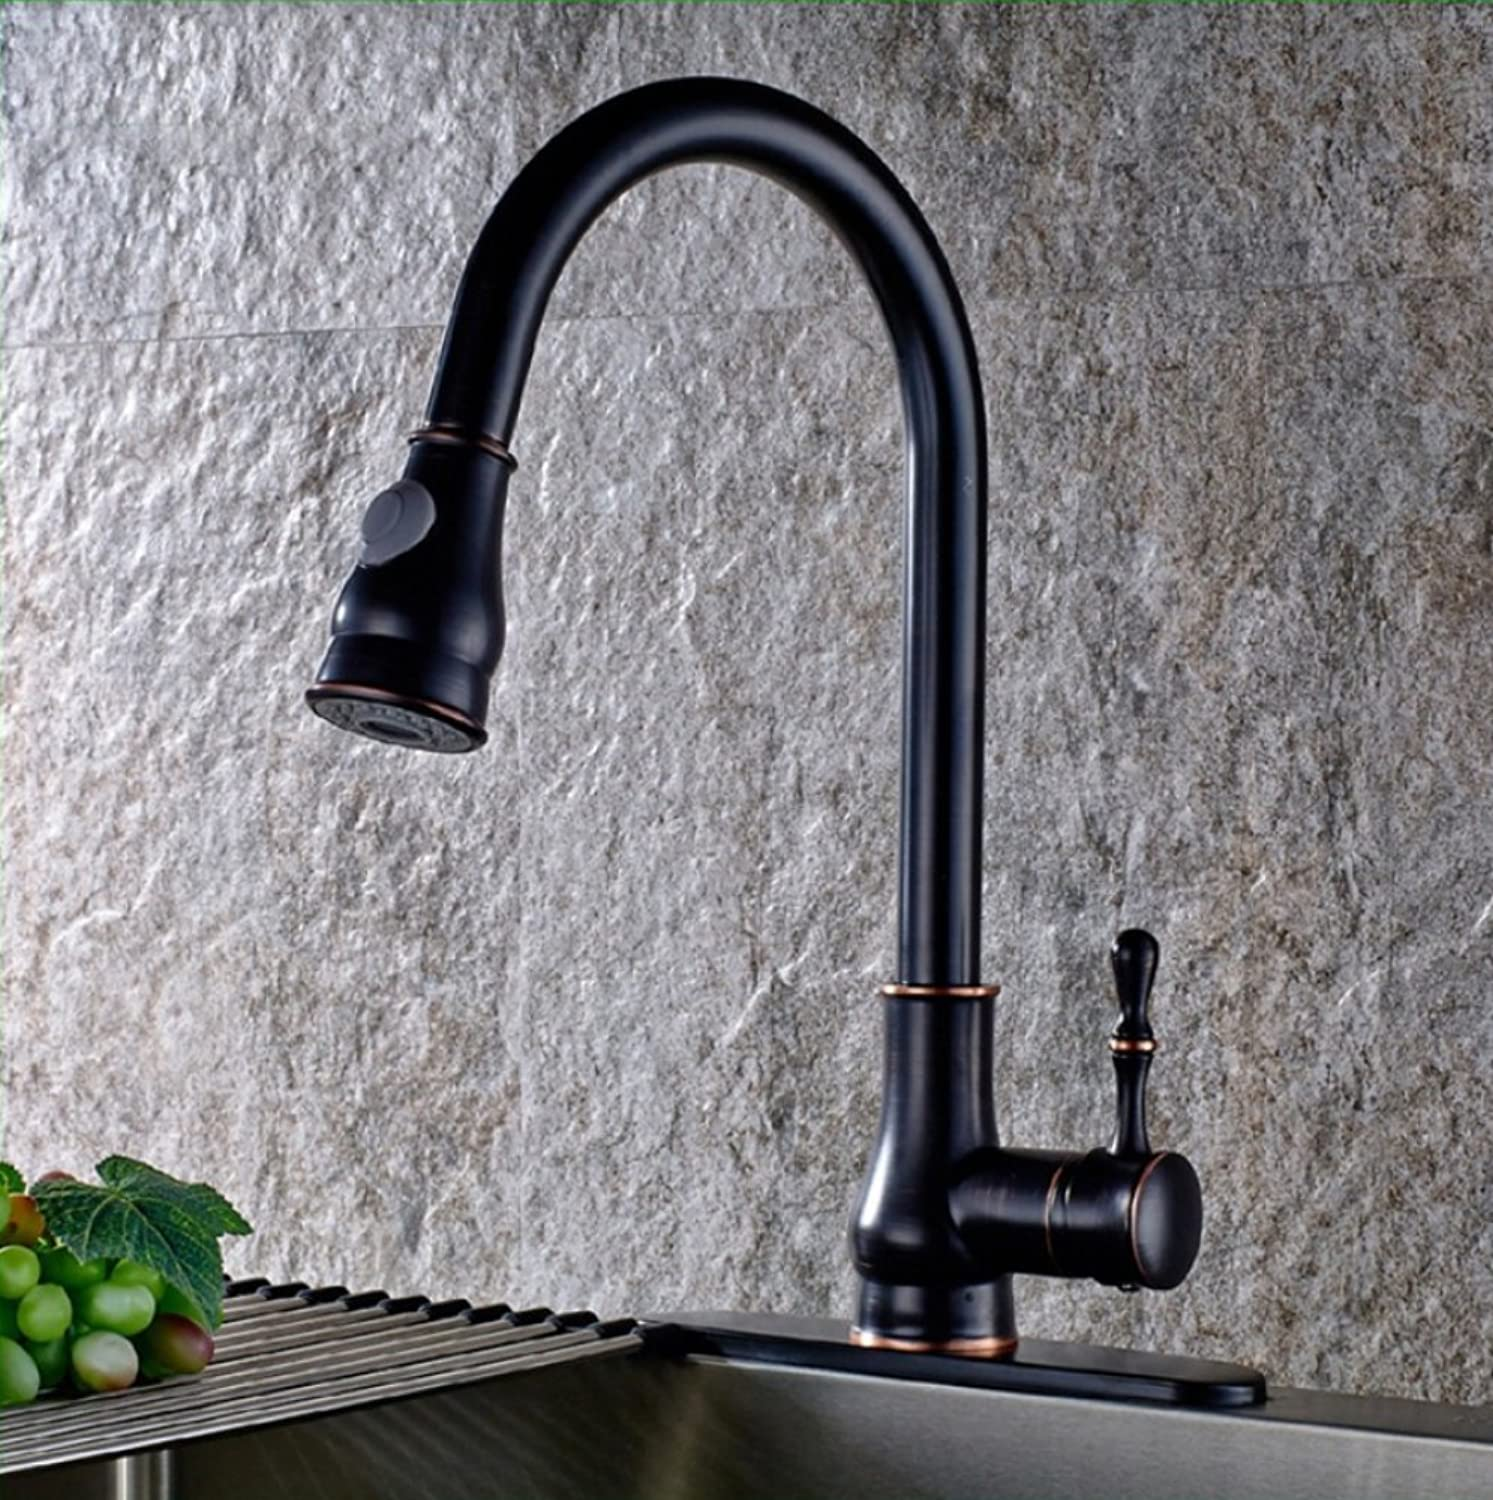 LD&P Kitchen Taps,Kitchen Cold and hot mixing Taps Faucet,all bronze chrome wire drawing circular black color Can redate release drawing type single hole Kitchen Sink Taps